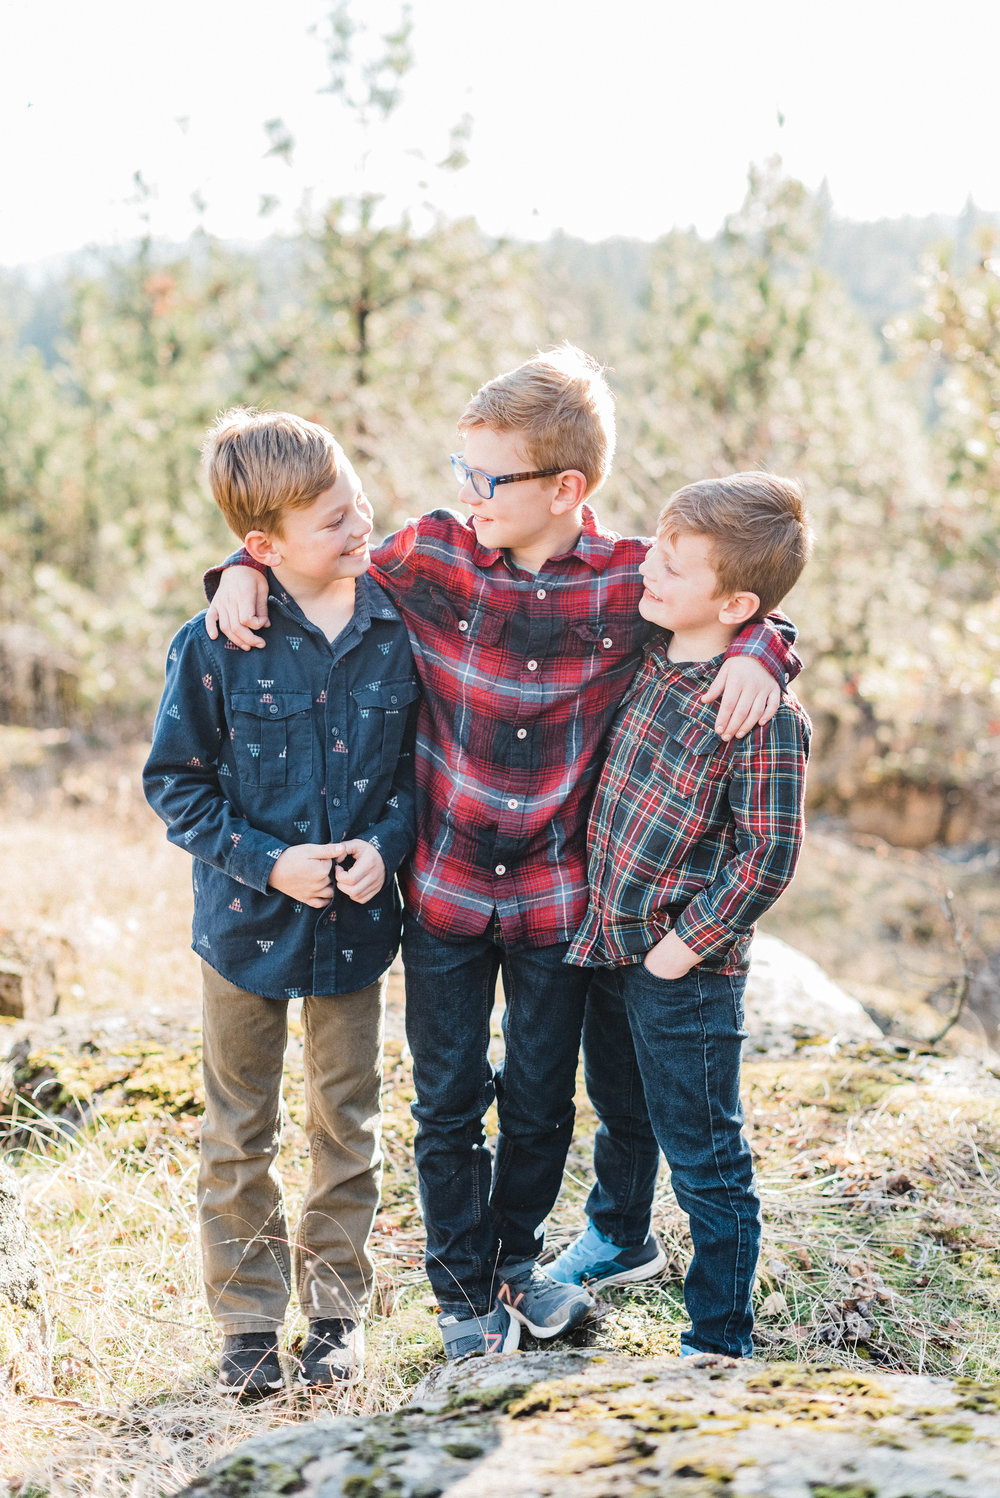 spokane_family_photographer_longmeier (2 of 19).jpg